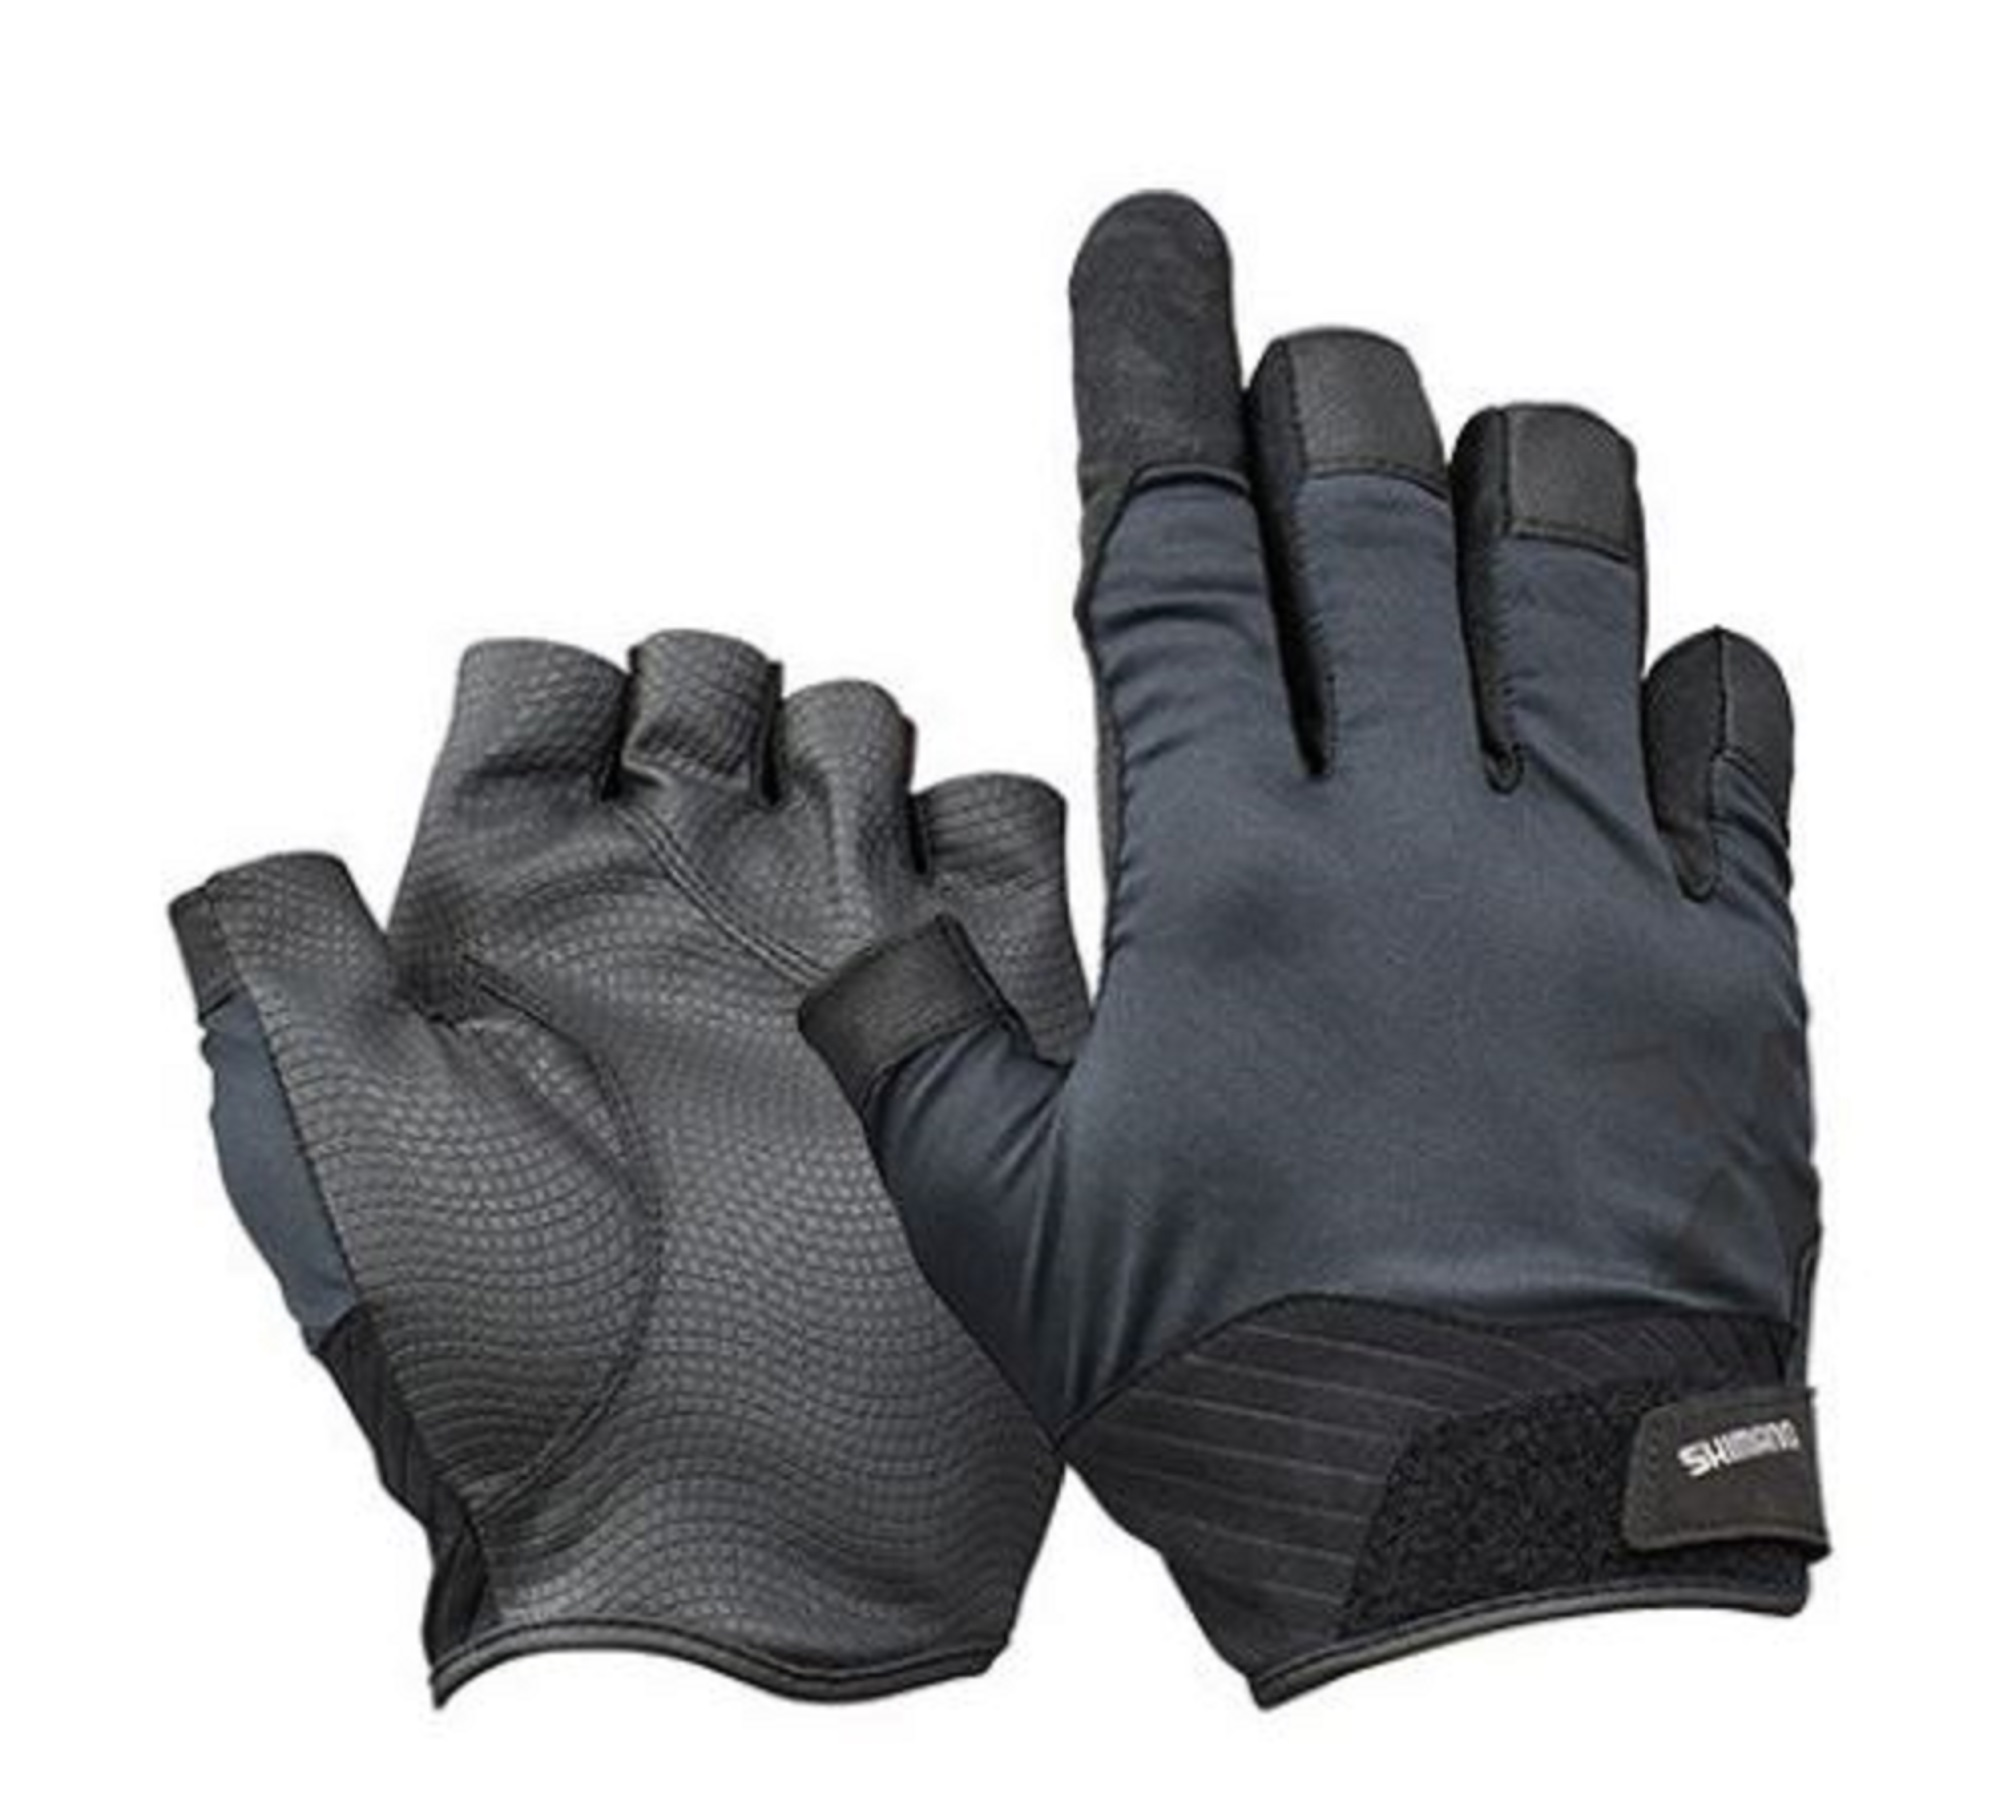 Shimano GL-229T Power Casting Gloves Right Index Finger Black Size XL 670304